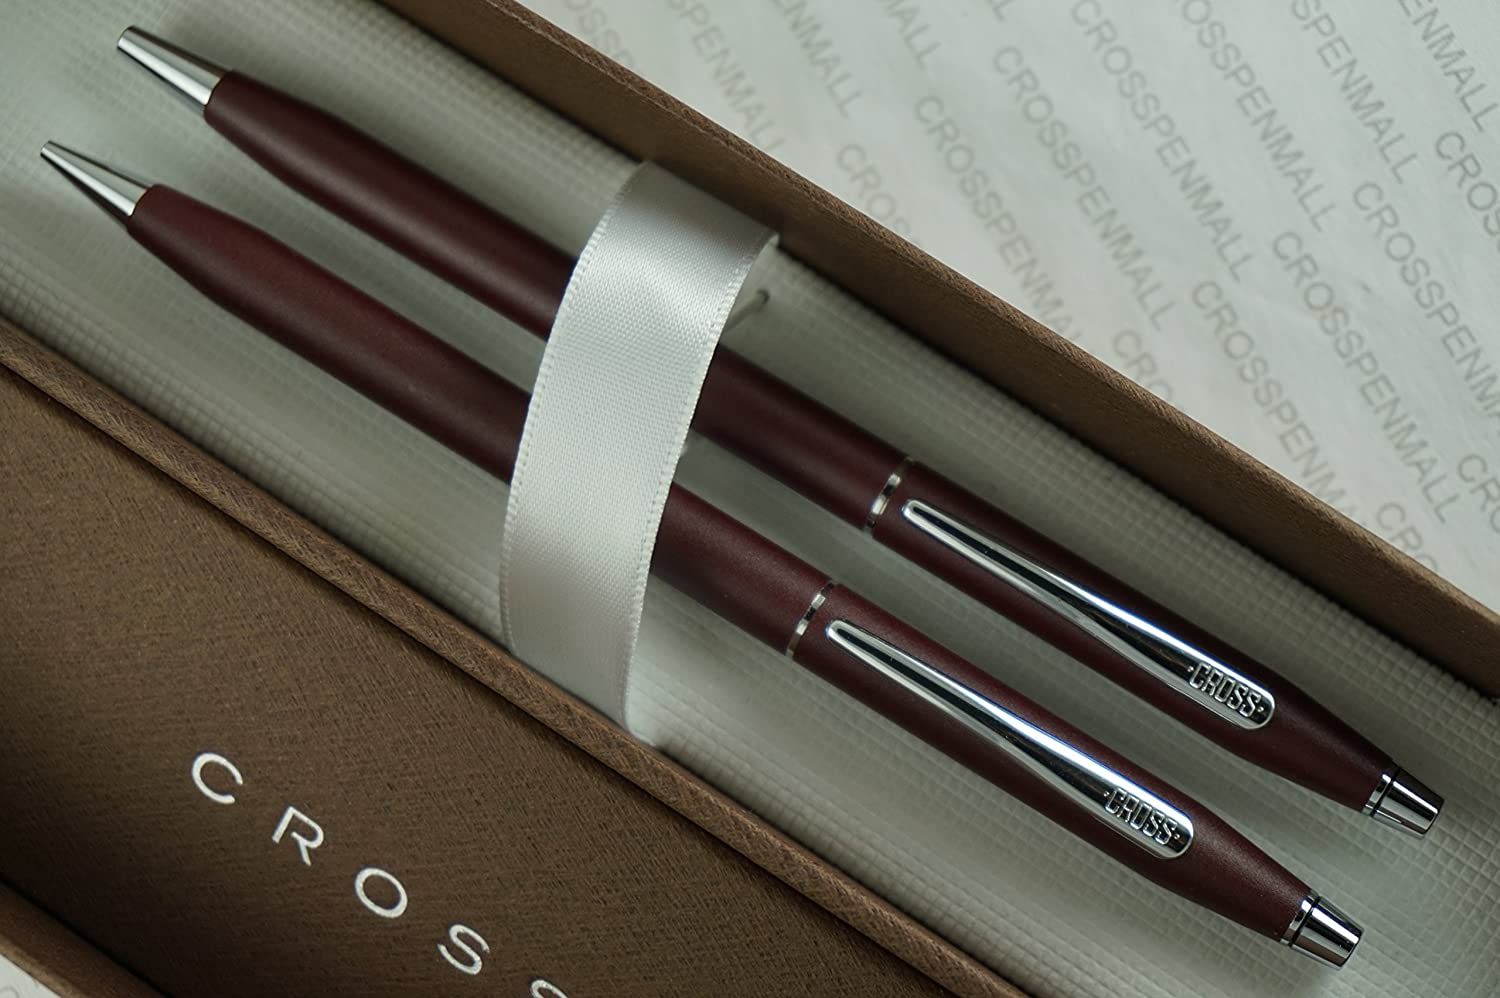 Cross Made in the USA Classic Century Satin Matte Burgundy and Polished Chrome Pen & 0.5mm Pencil Set by A .T CROSS COMPANY